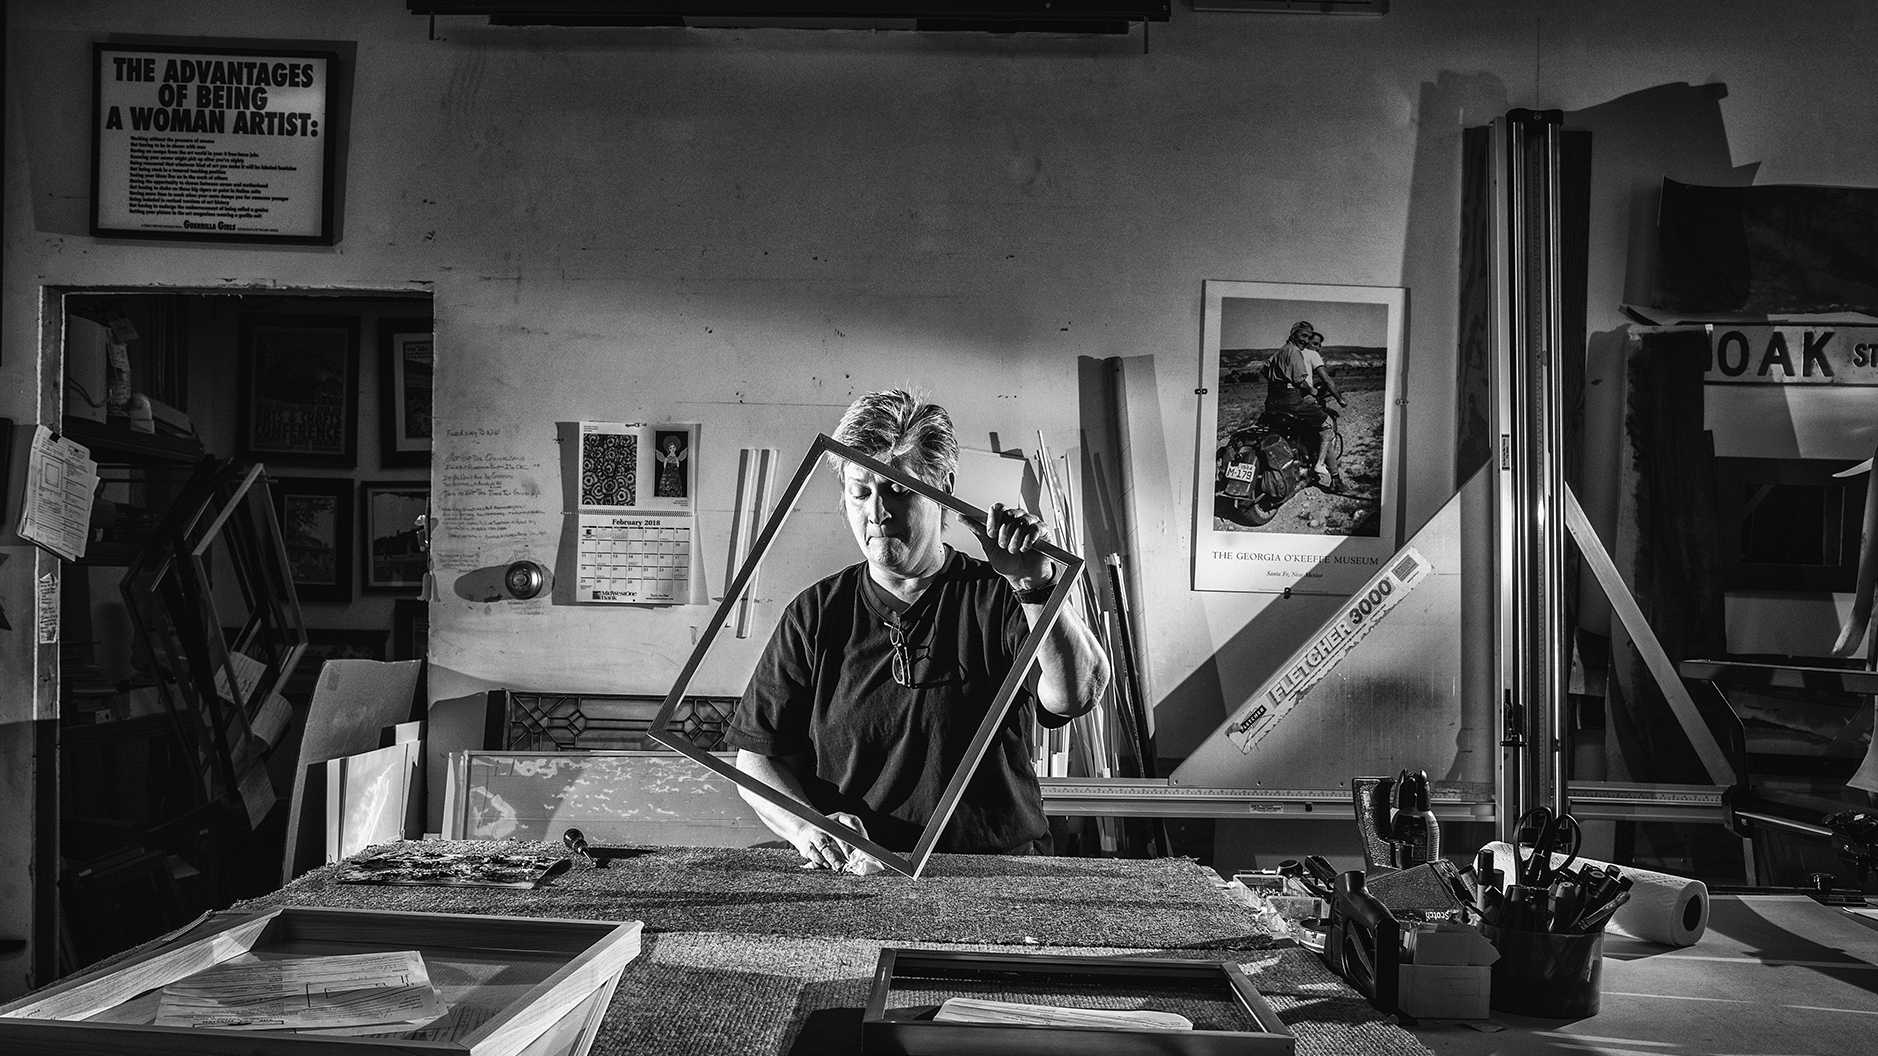 Iowa City resident and The Art Mission owner Kathleen Rash works on a frame in her workshop on Tuesday, Feb. 13, 2018. Kathleen opened the store in 1999, which acts as a gallery space with framing services on South Lynn Street. She has been open for business for 18 years but joked,